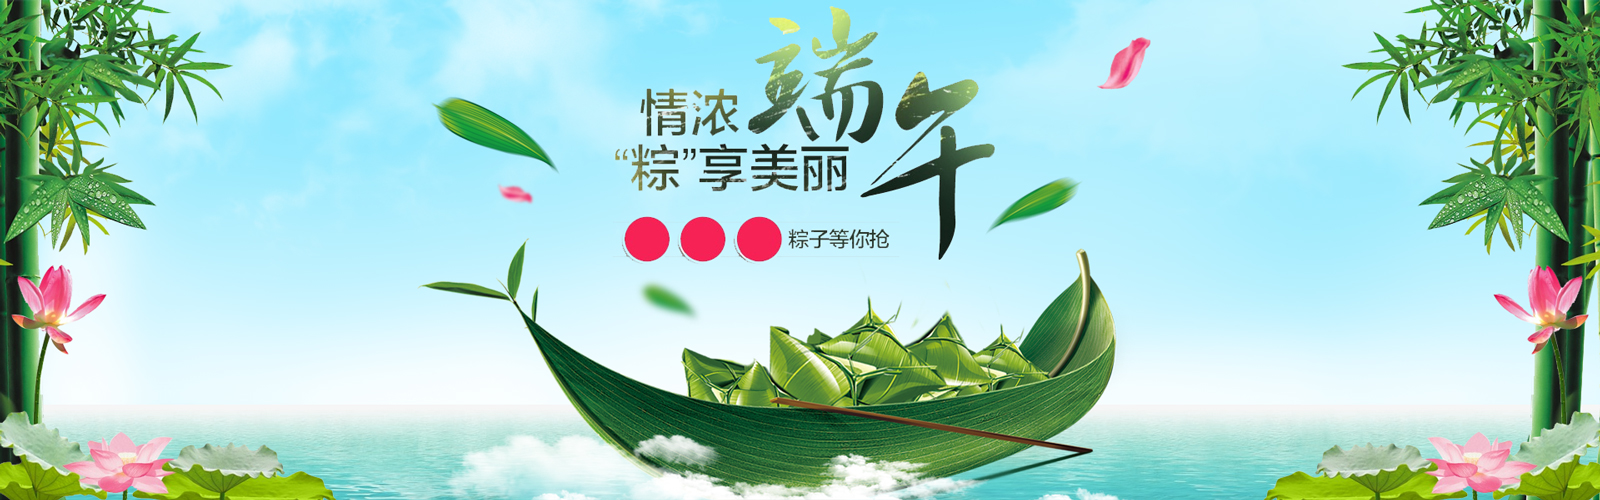 China Dragon Boat Festival advertising design banner PSD File Free Download #.1